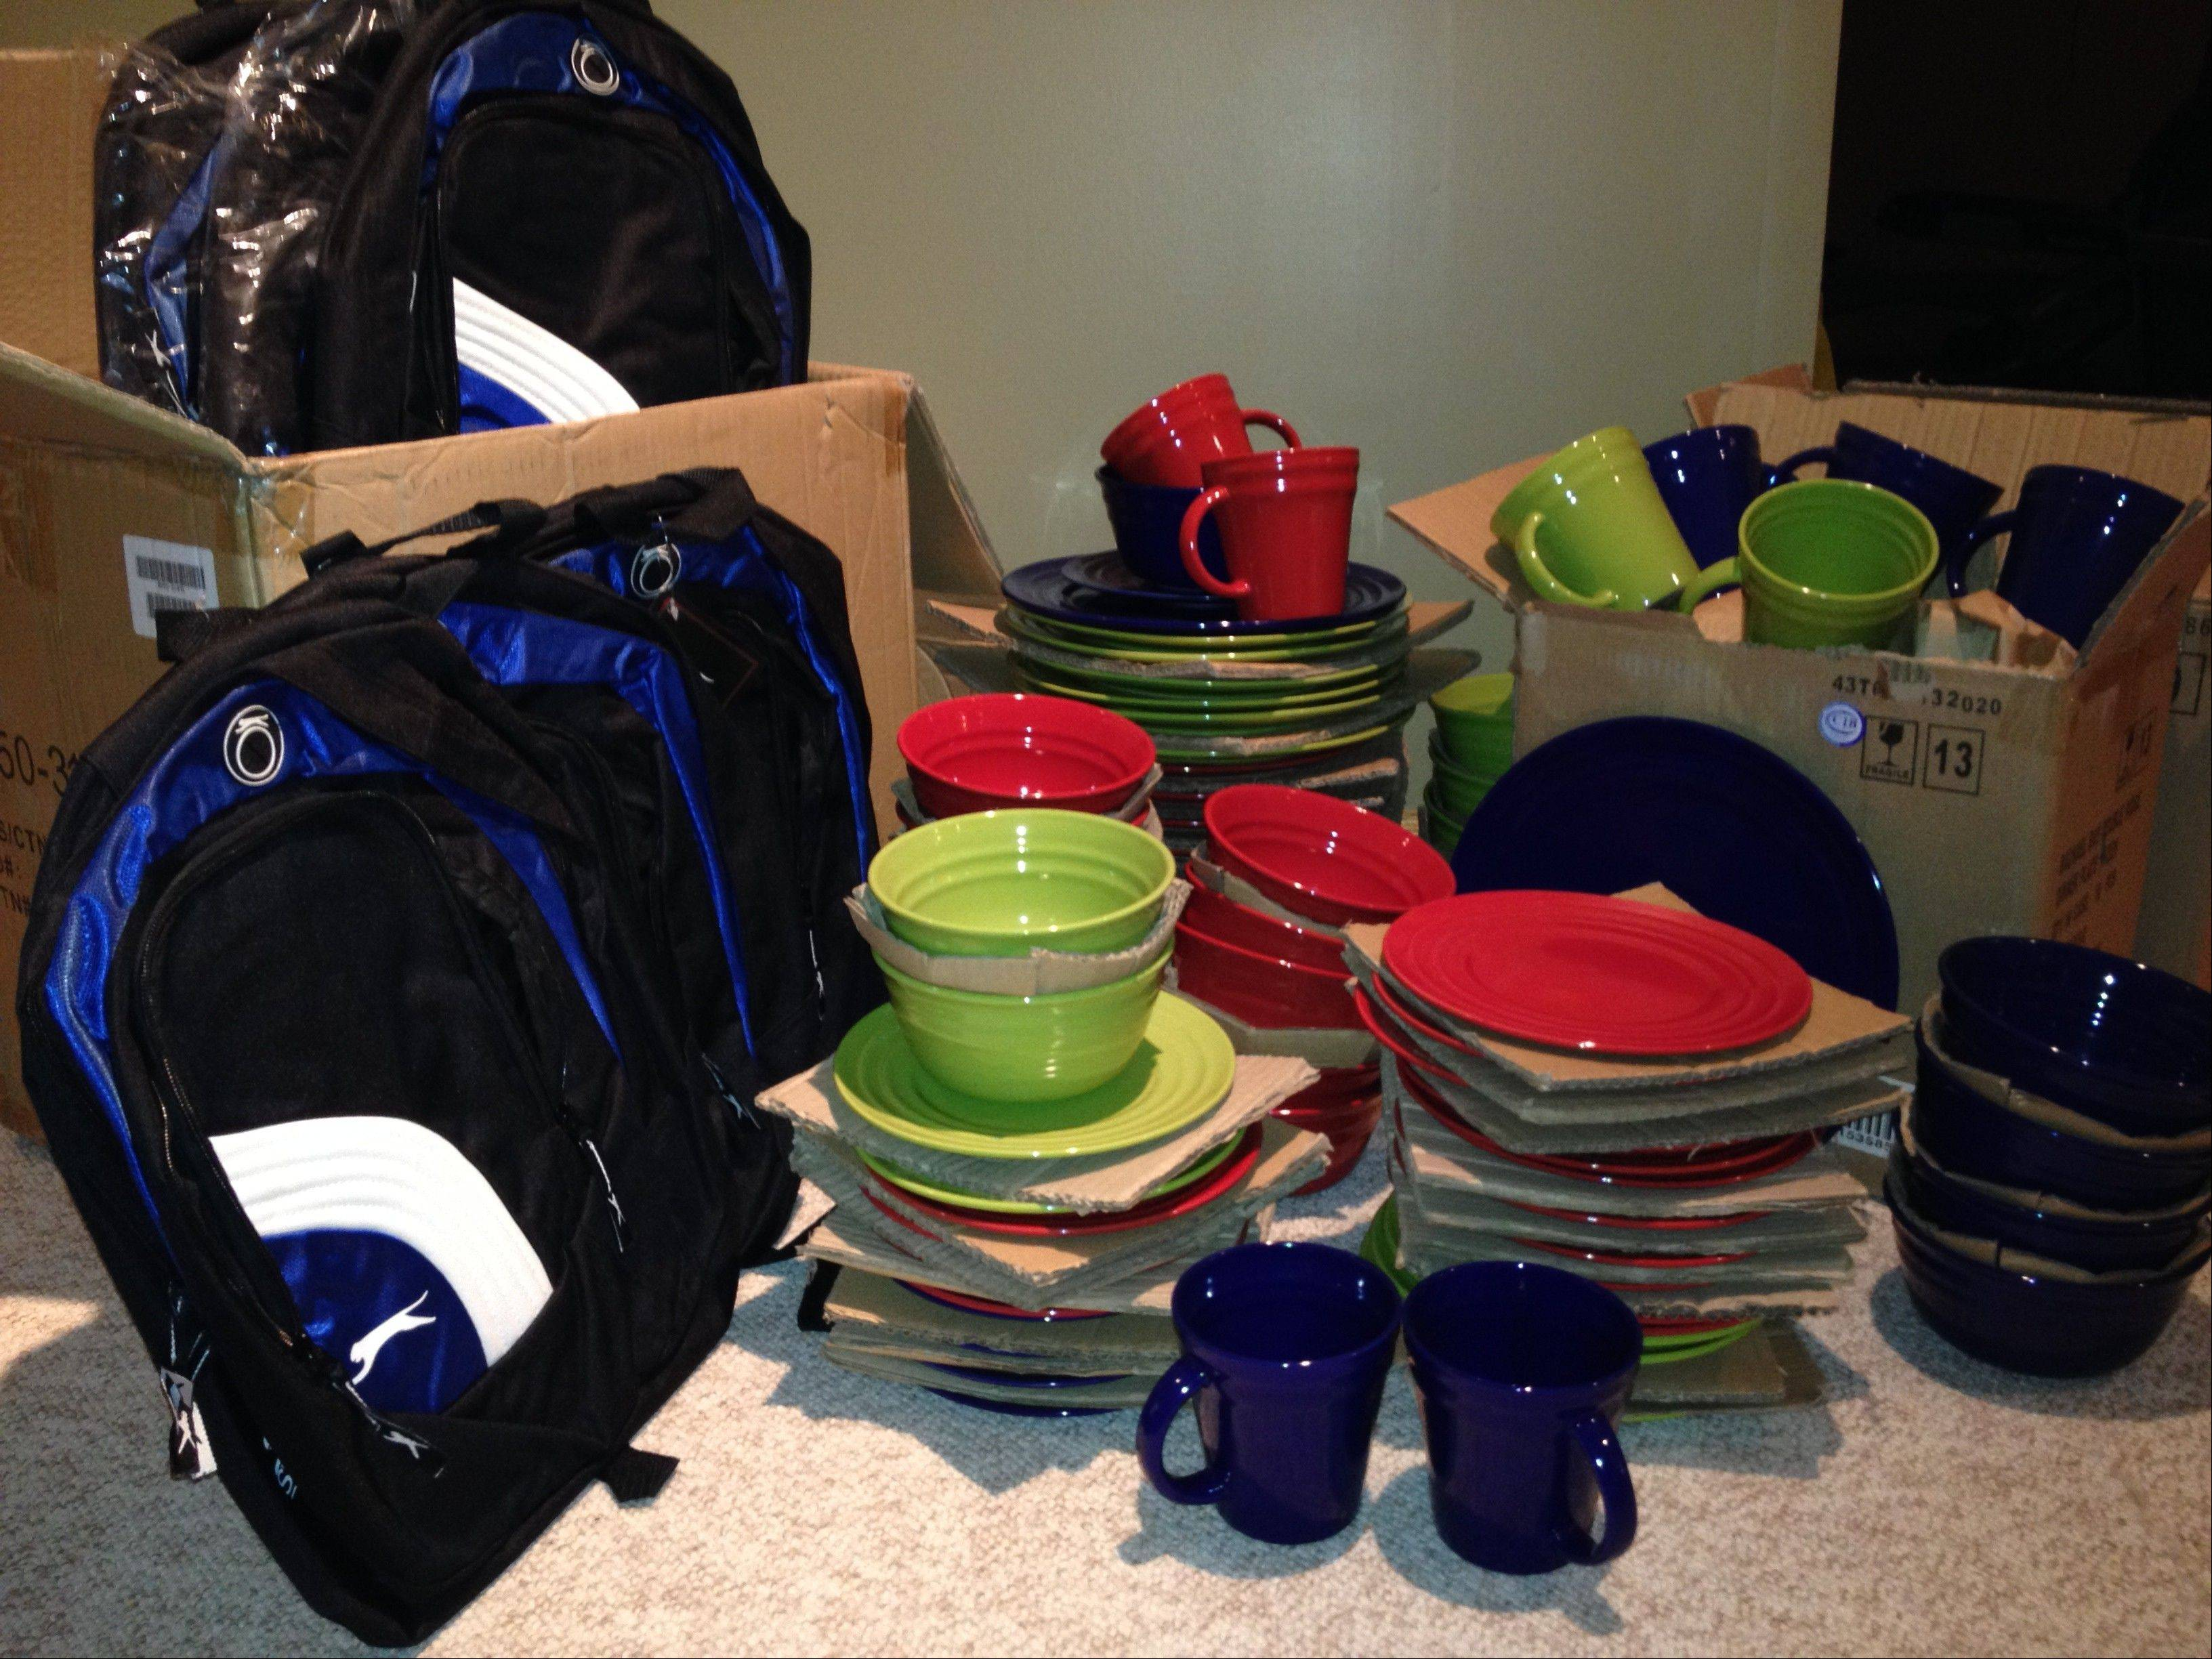 Backpacks of school supplies, food, new dishes and clothing are among the items collected by CHIP IN Batavia.$PHOTOCREDIT_ON$courtesy of Joanne Spitz$PHOTOCREDIT_OFF$